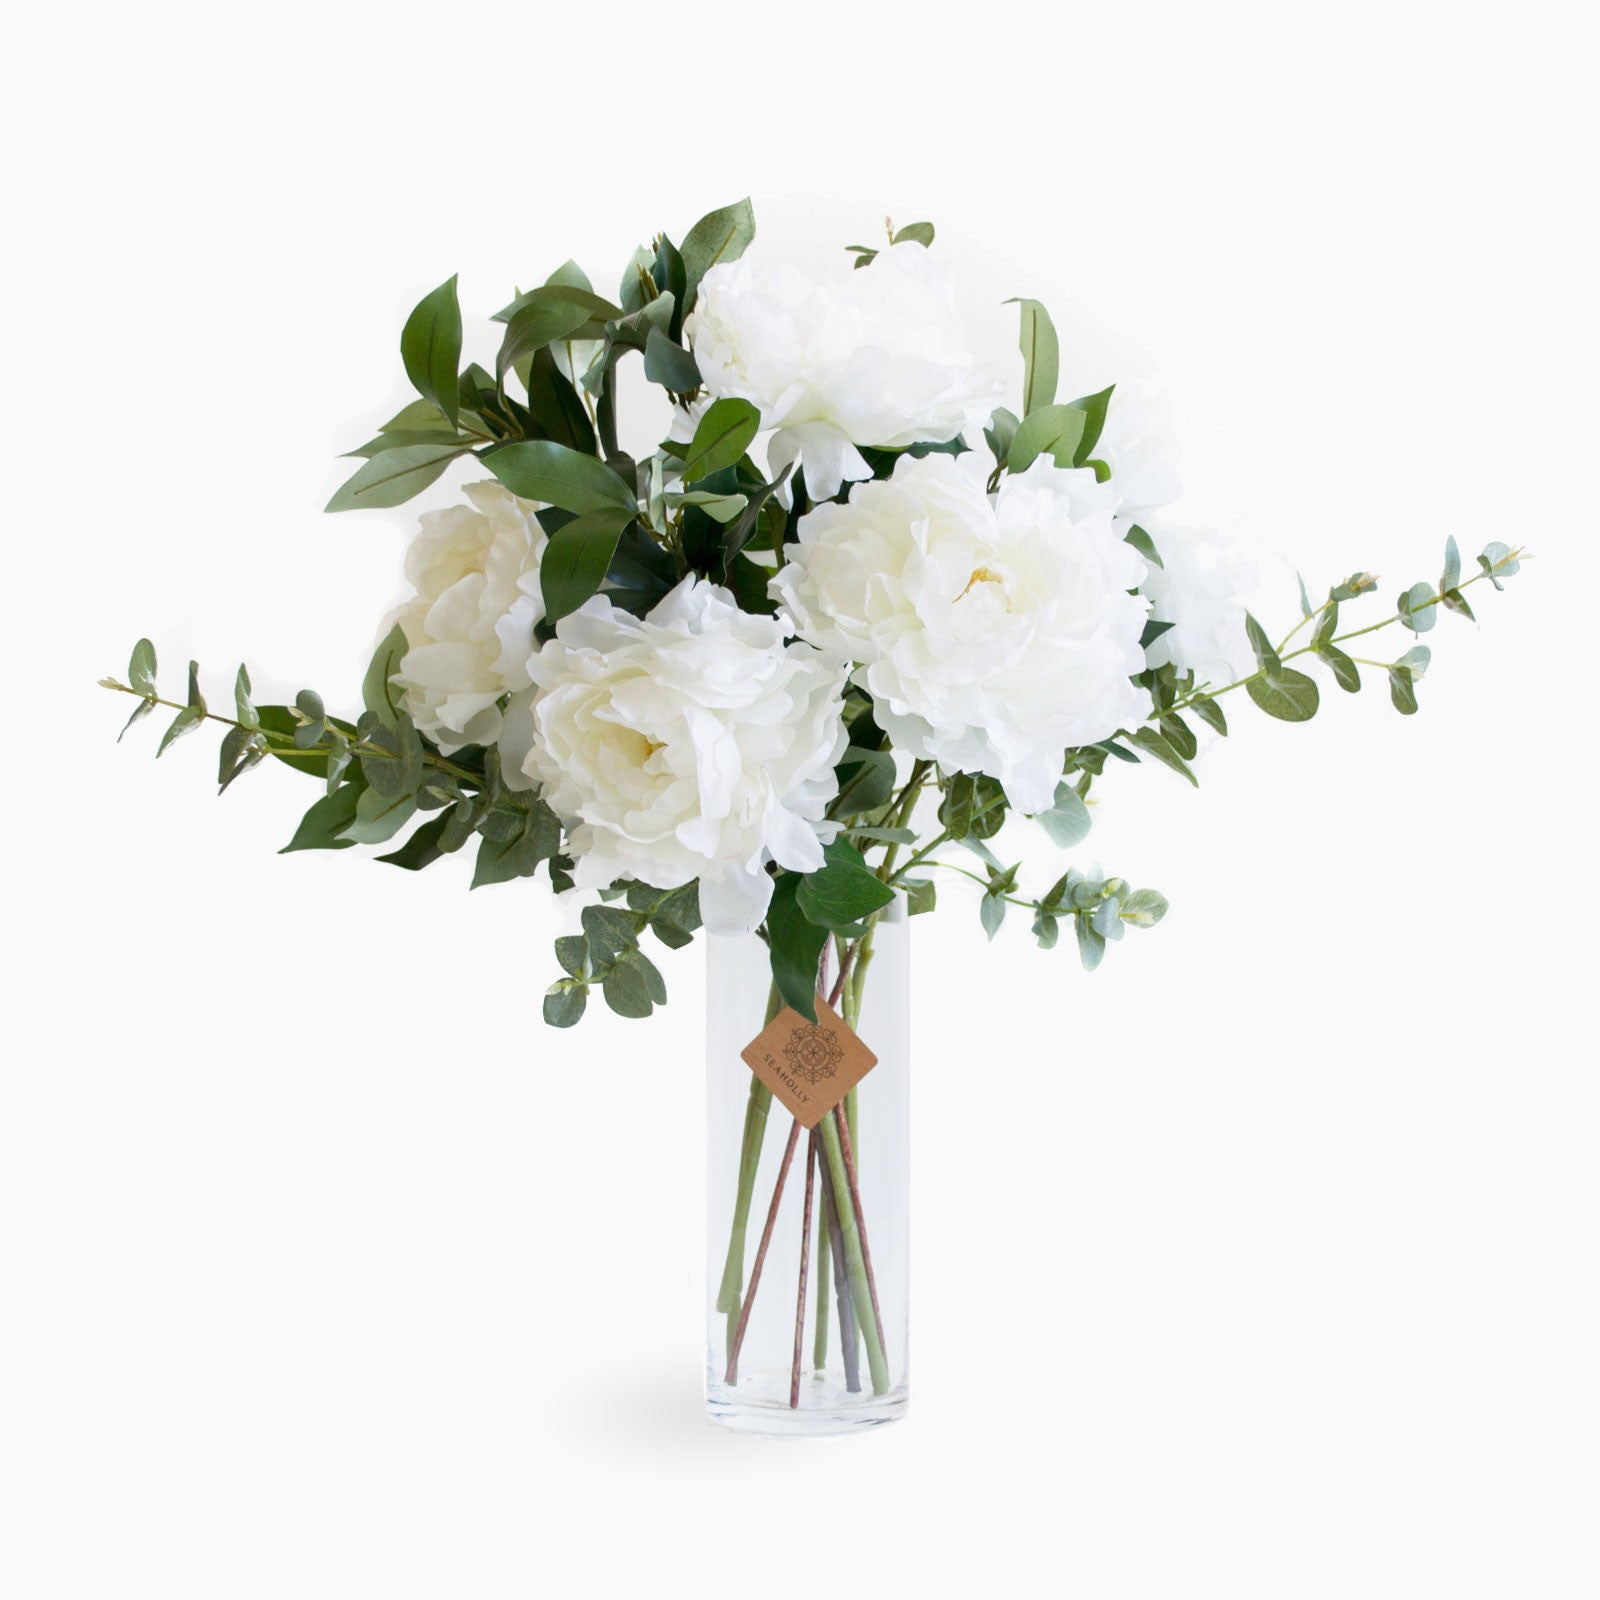 White peonies and foliage